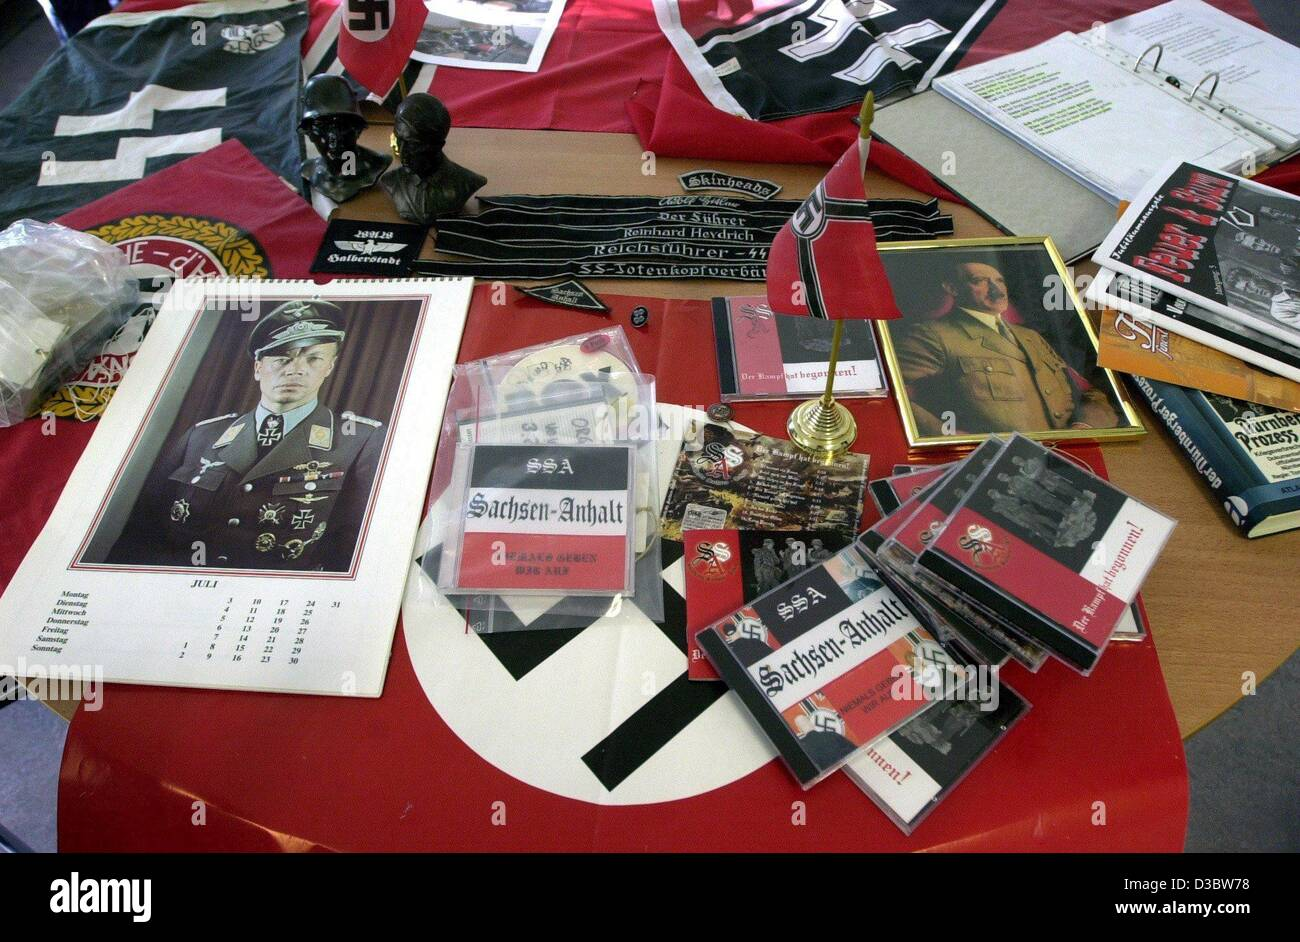 (dpa) - Right extremist propaganda material was confiscated by police in Halberstadt, eastern Germany, 3 September - Stock Image